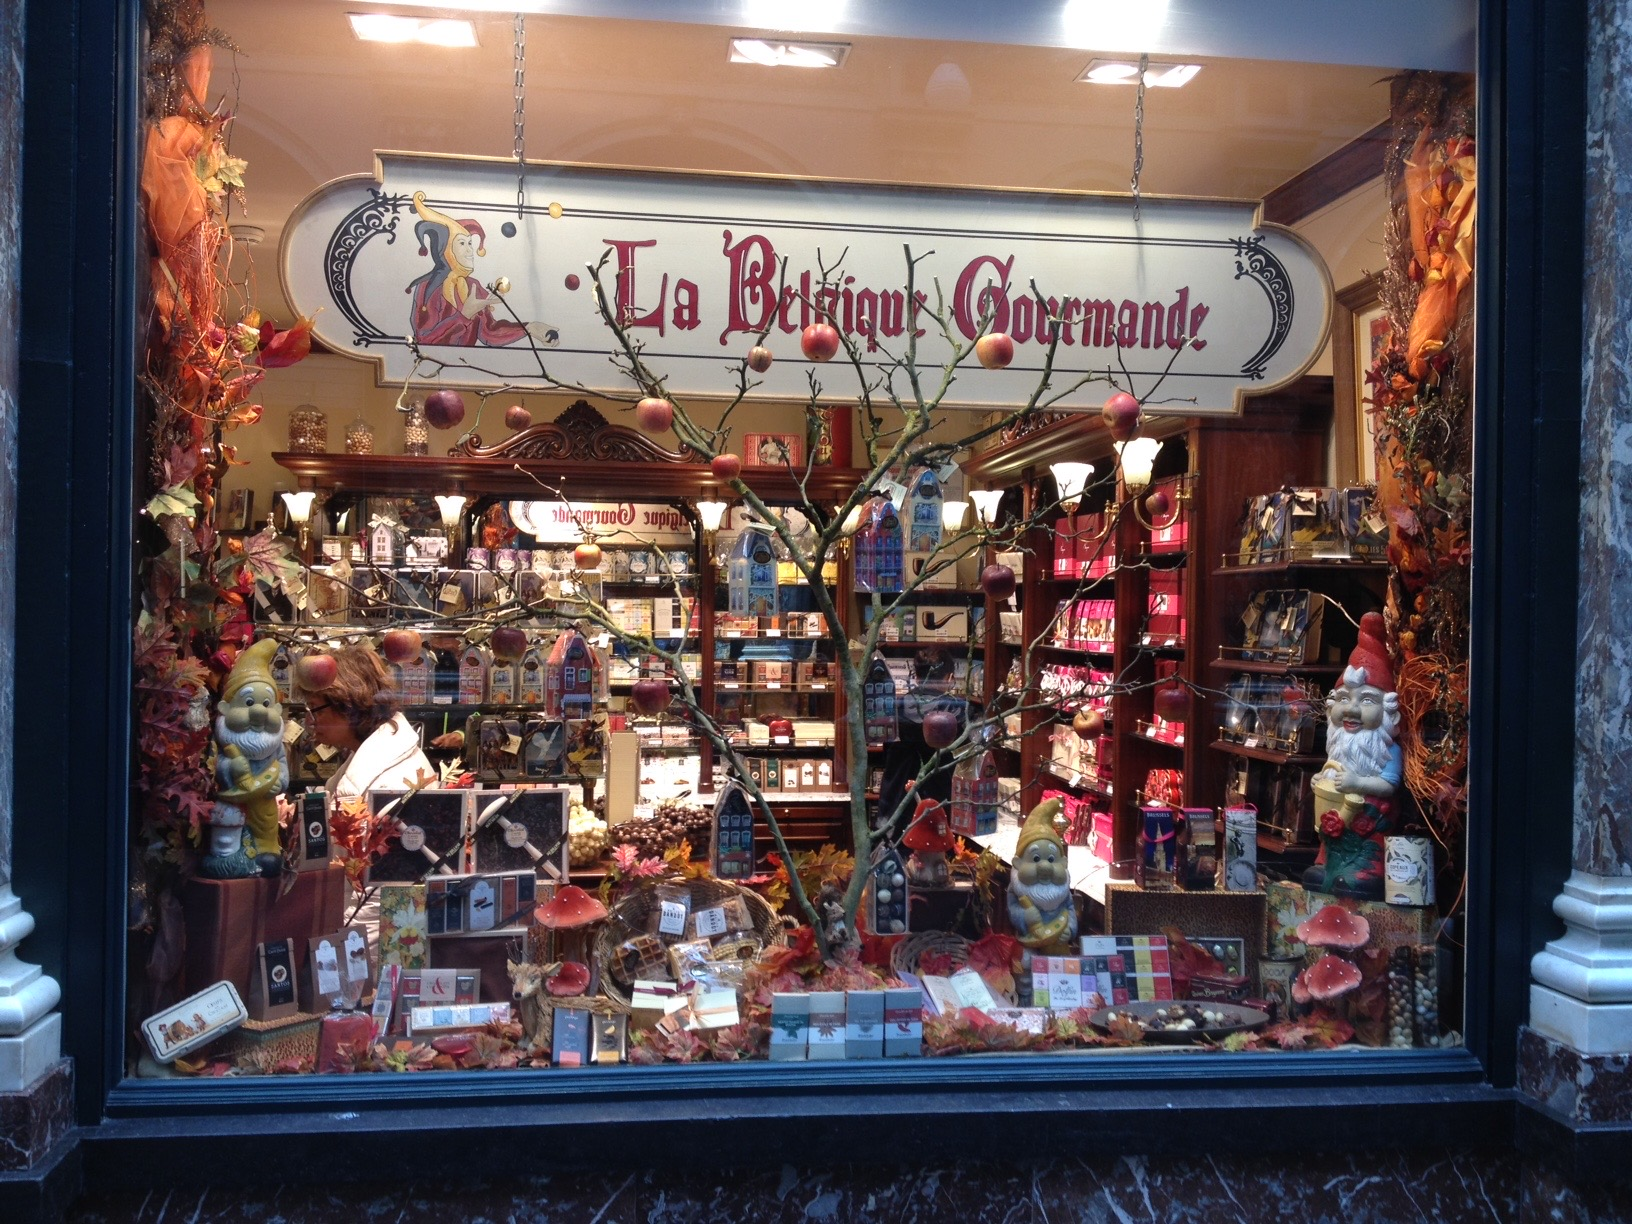 Window shopping in Belgium. Wouldn't this Belgium chocolate shop be a great addition to a Dutch coffeeshop?